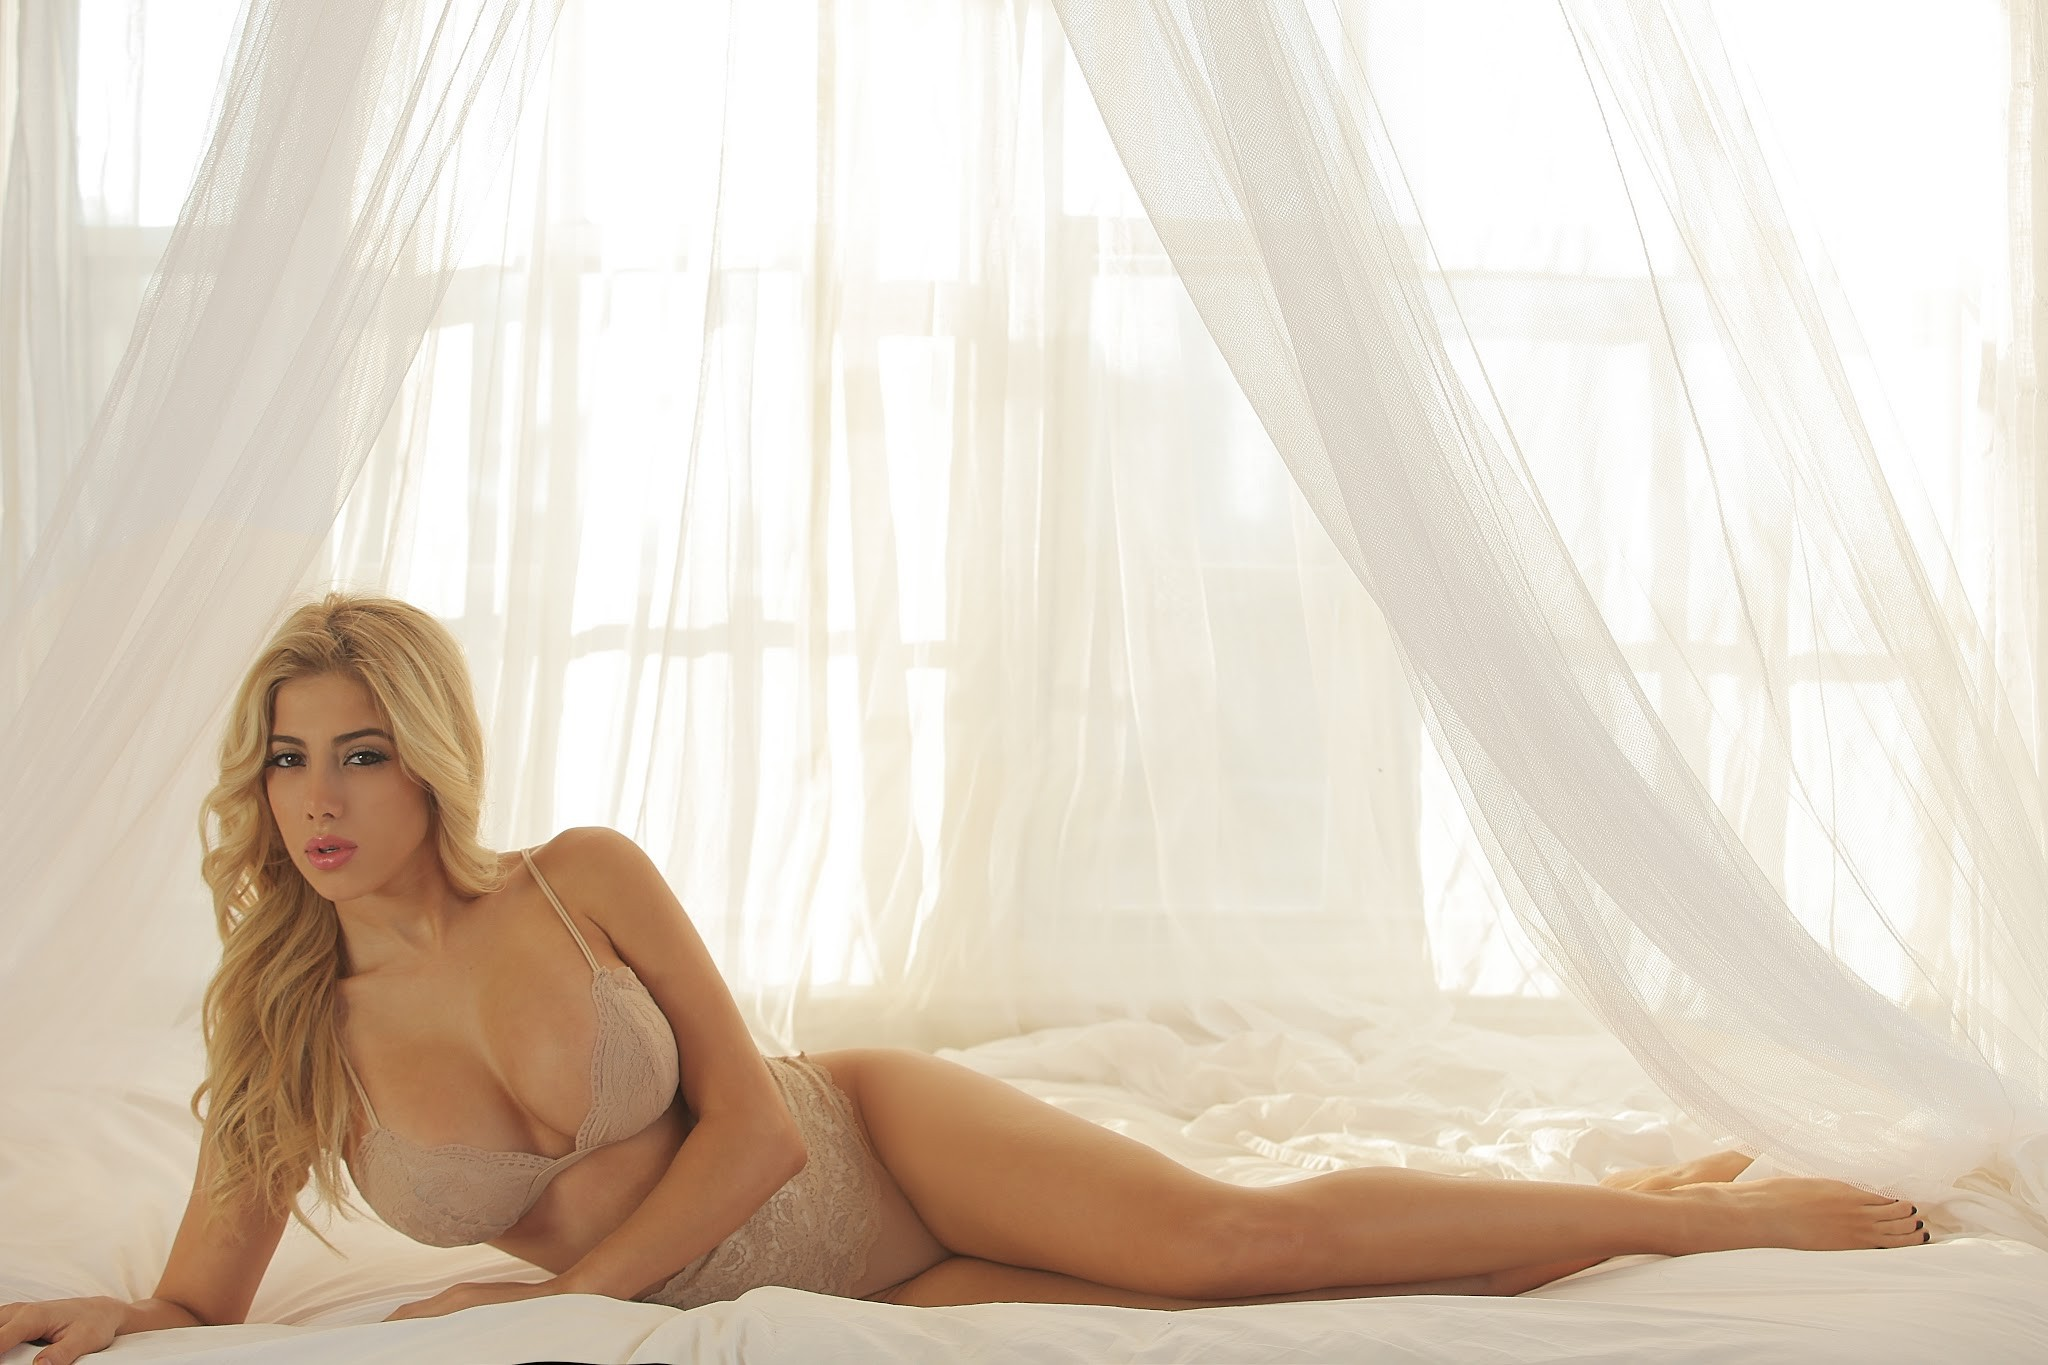 Valeria Orsini Desktop Wallpaper